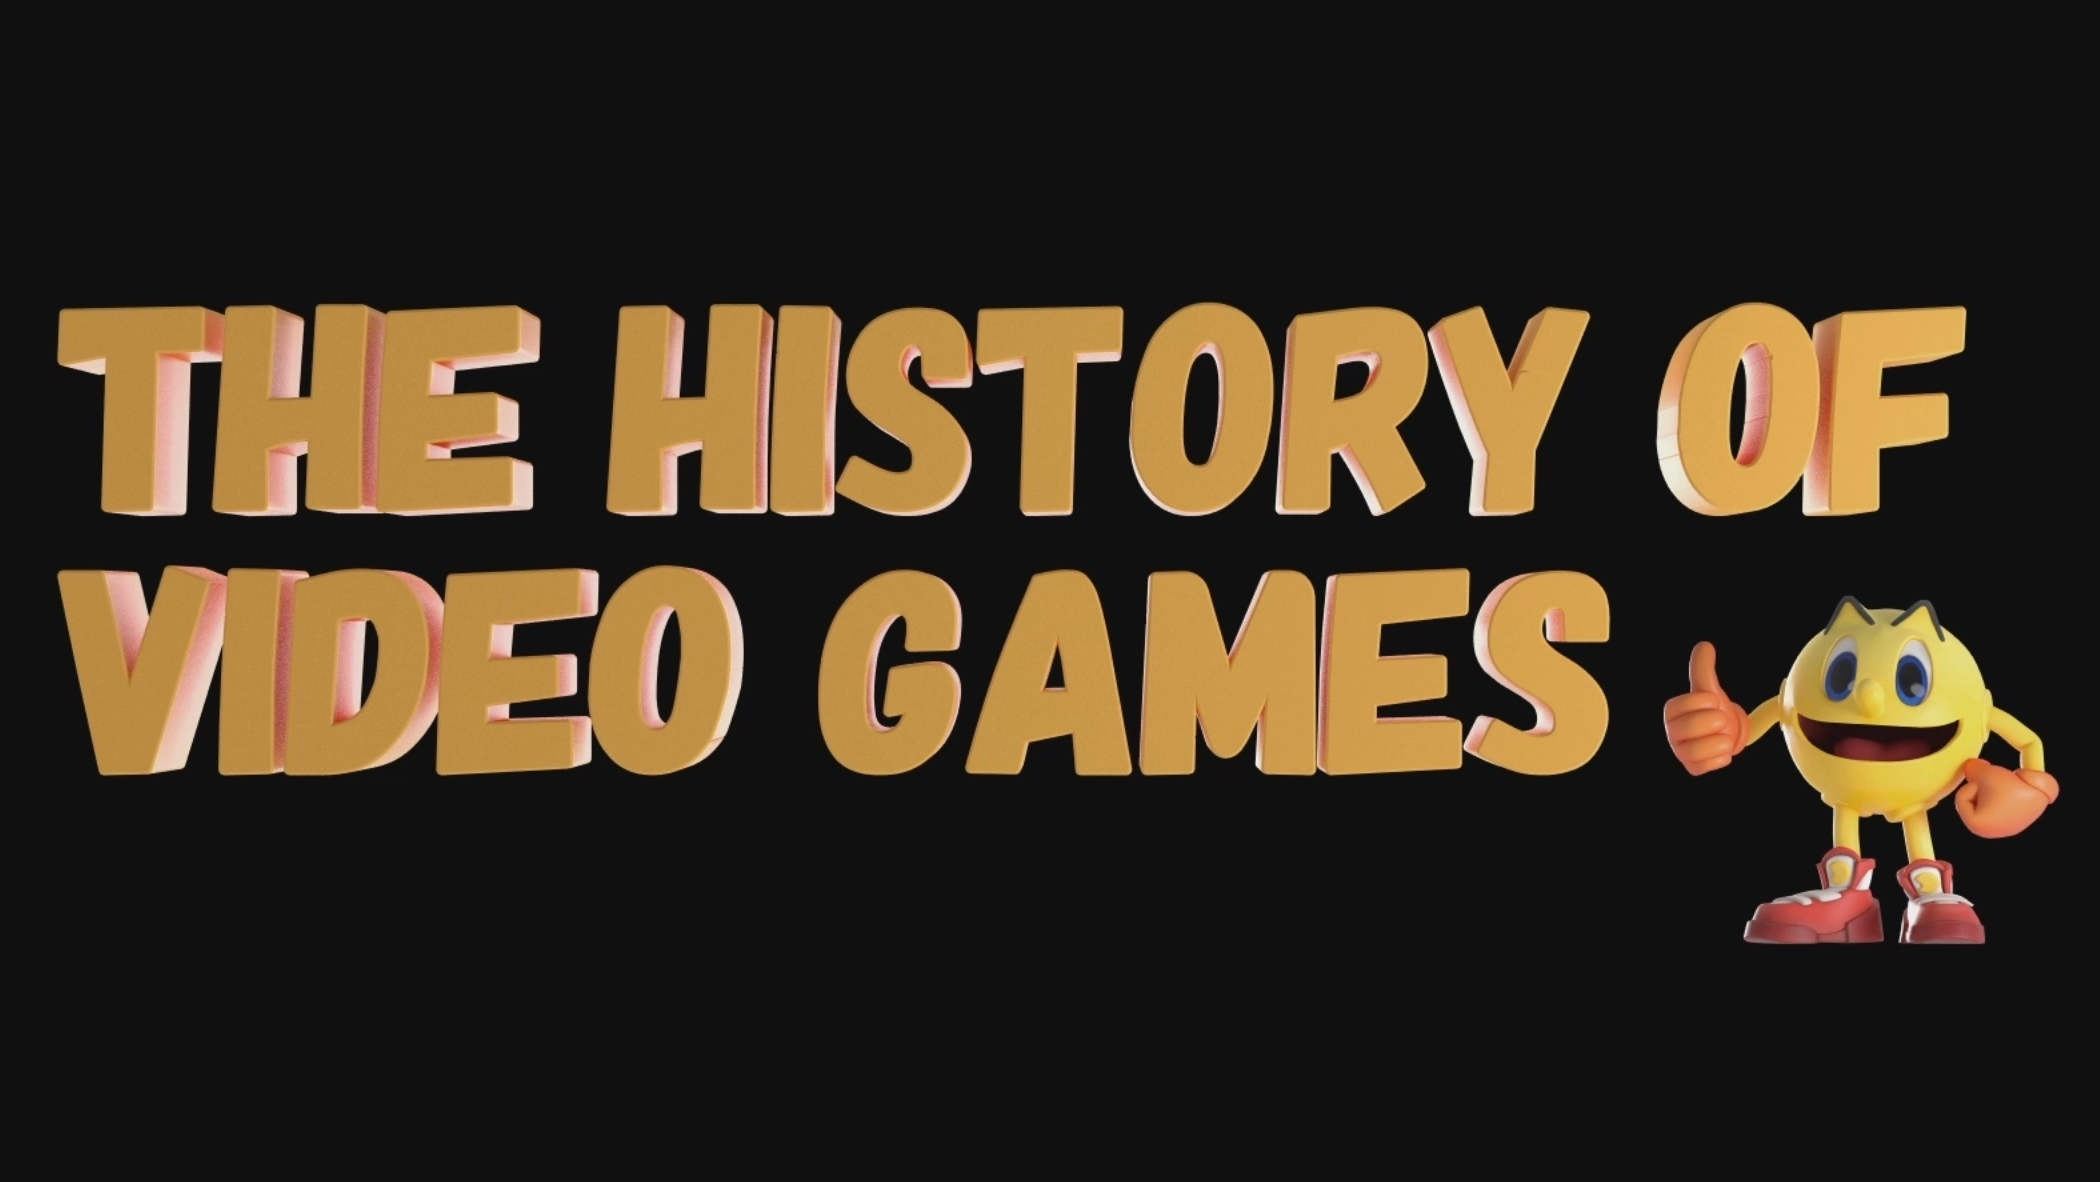 The-History-of-video-games-logo-2.jpg